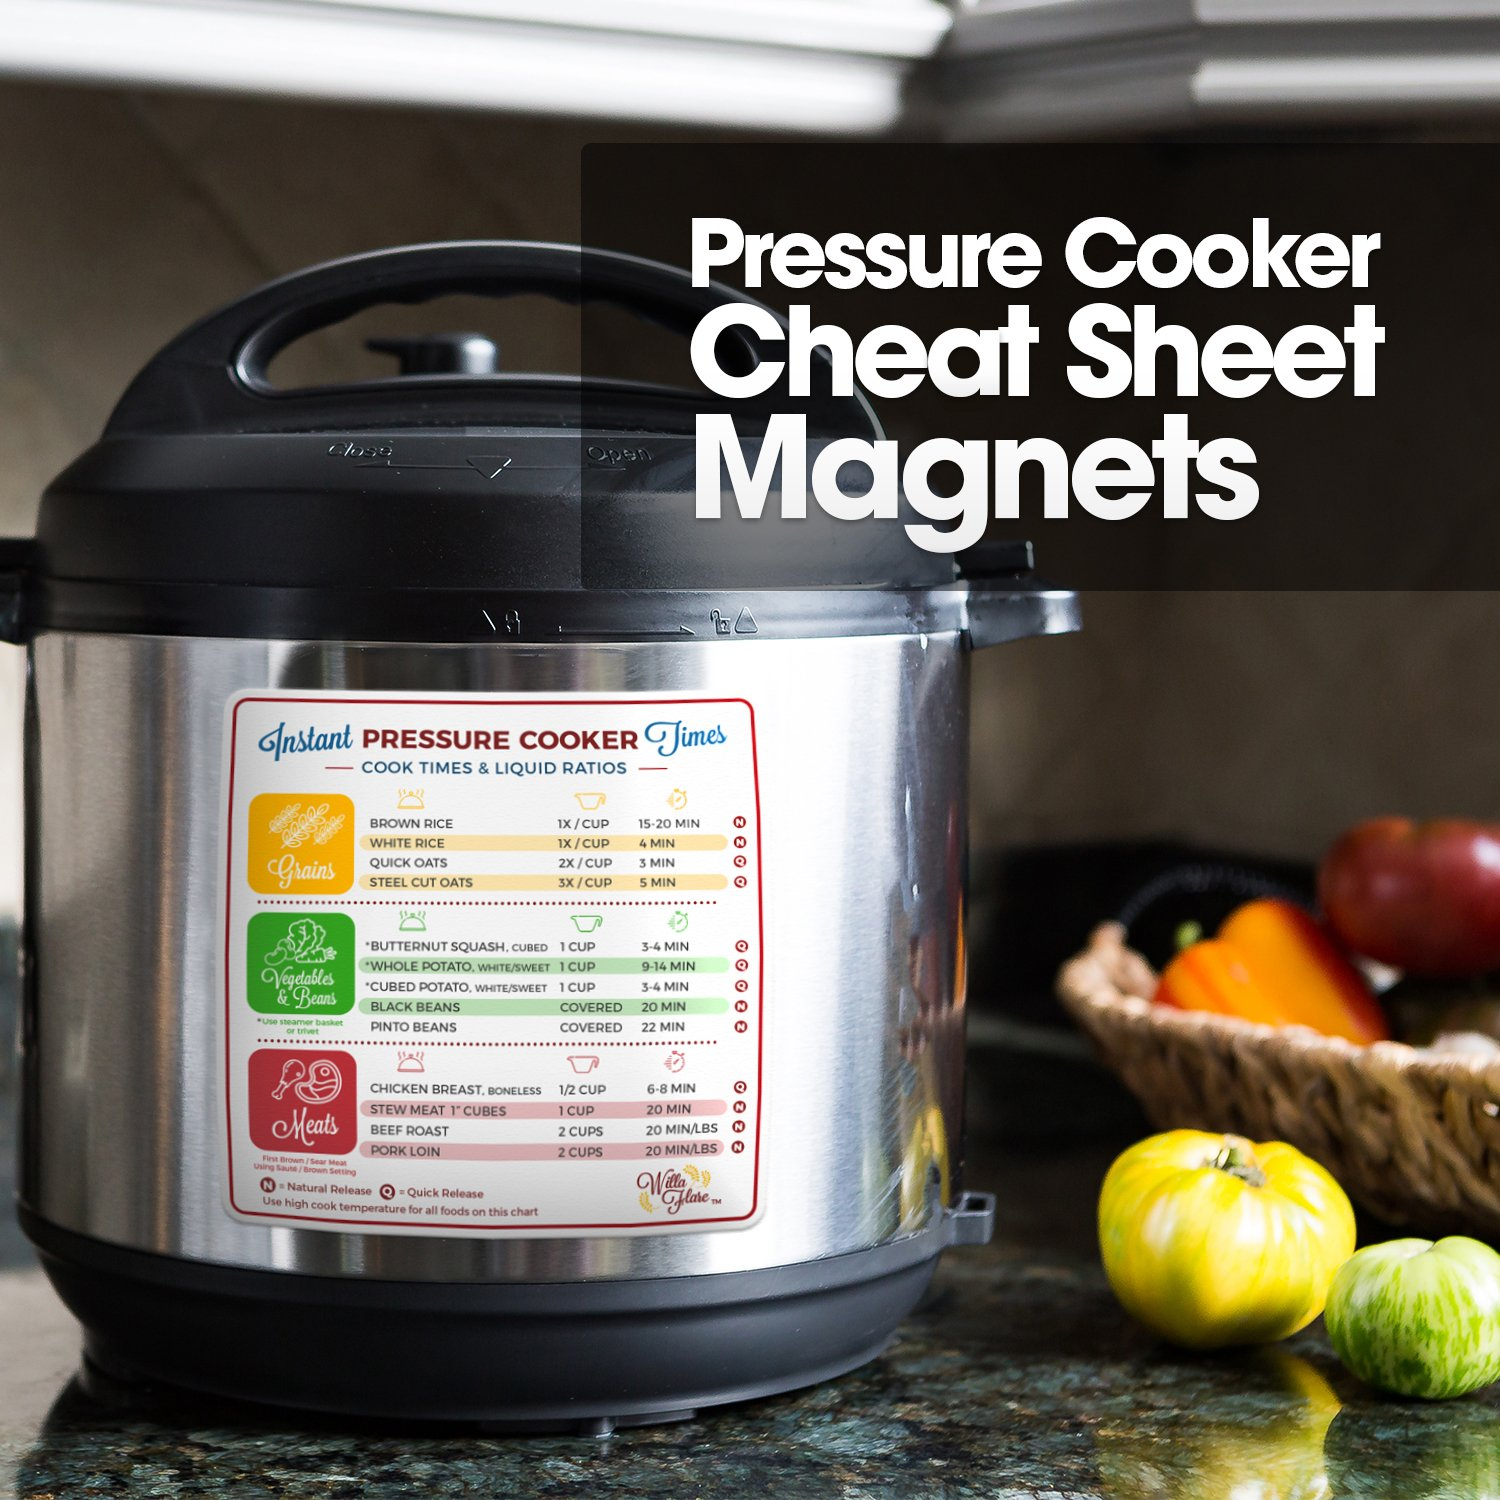 Instant Pot Electric Pressure Cooker Cook Times Quick Reference Guide | Instapot Accessories Magnetic Cheat Sheet Magnet Set | Insta Pot Sticker and Decal Alternative | Made in the USA by Willa Flare (Image #3)